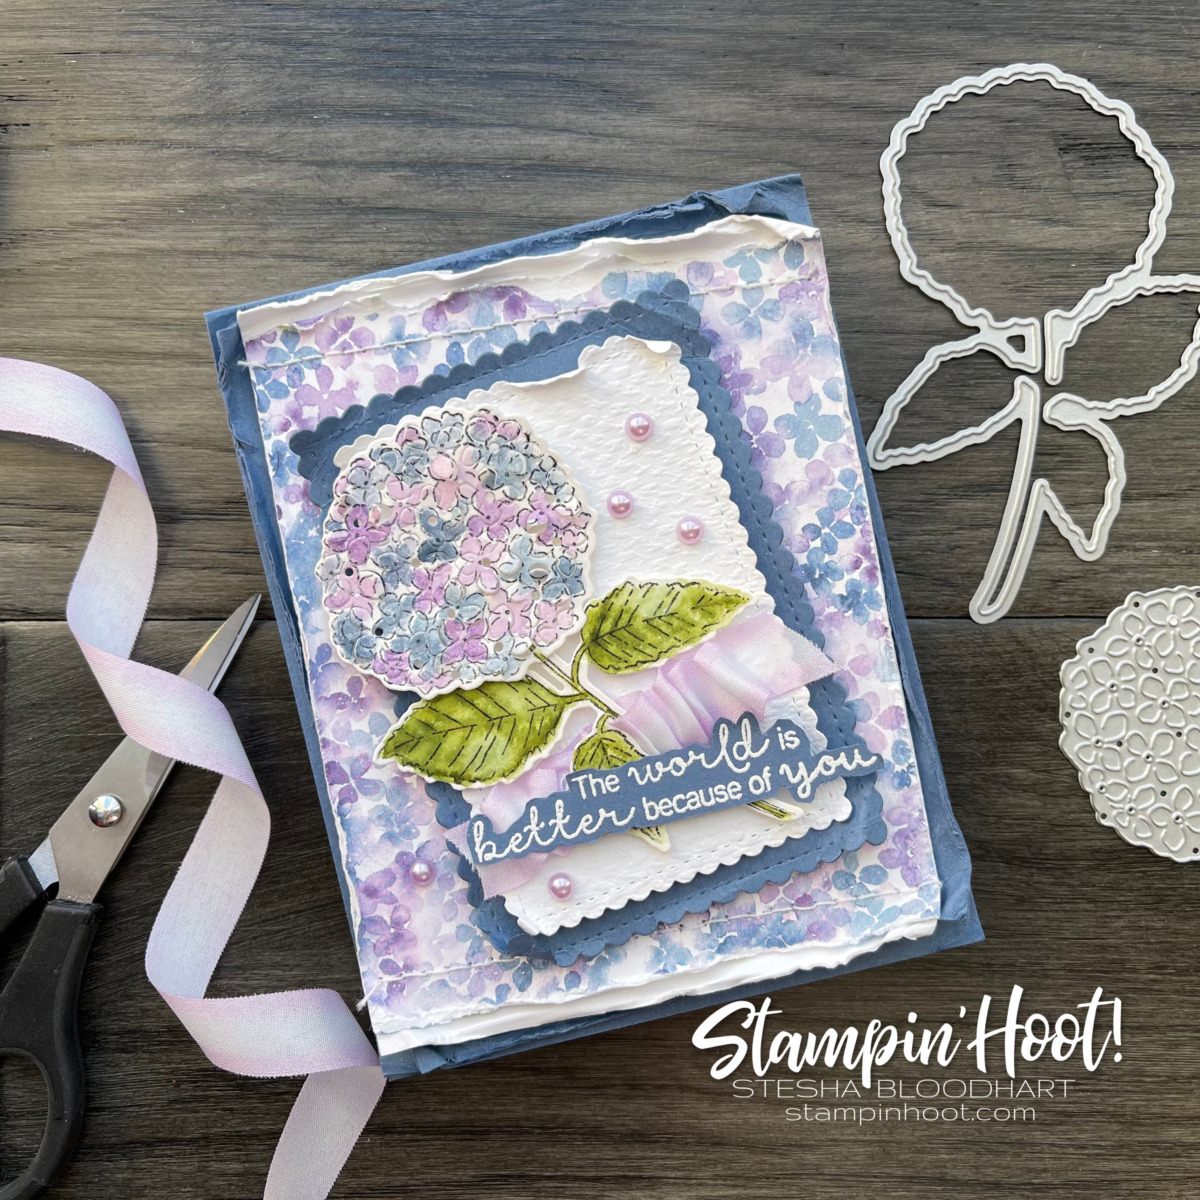 Hydrangea Hill Suite Collection from Stampin' Up! Birthday Card by Stesha Bloodhart, Stampin' Hoot!